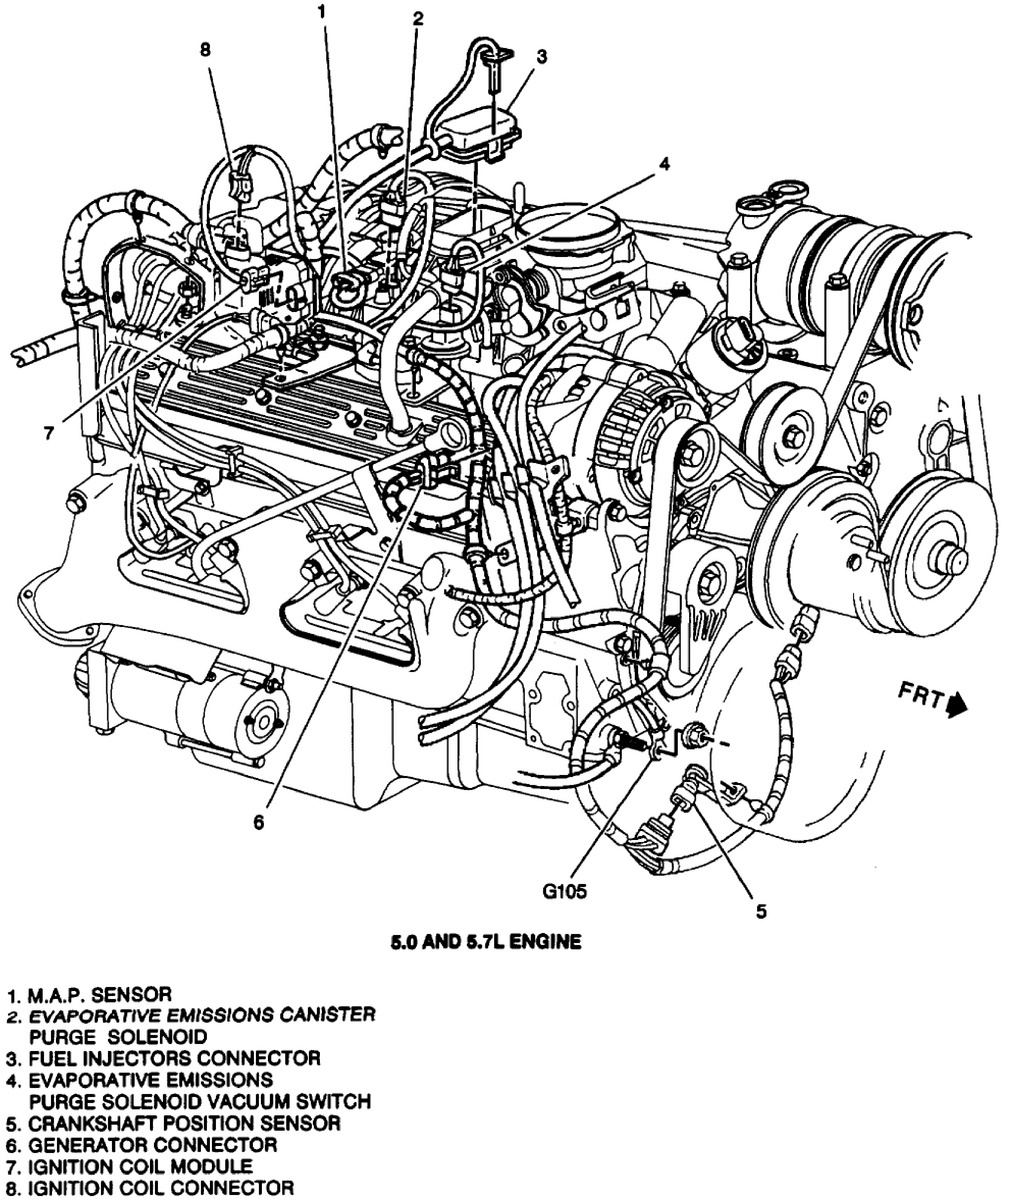 hight resolution of 1998 chevy engine diagram wiring diagram schematic1998 chevy engine diagram blog wiring diagram 1998 chevy cavalier